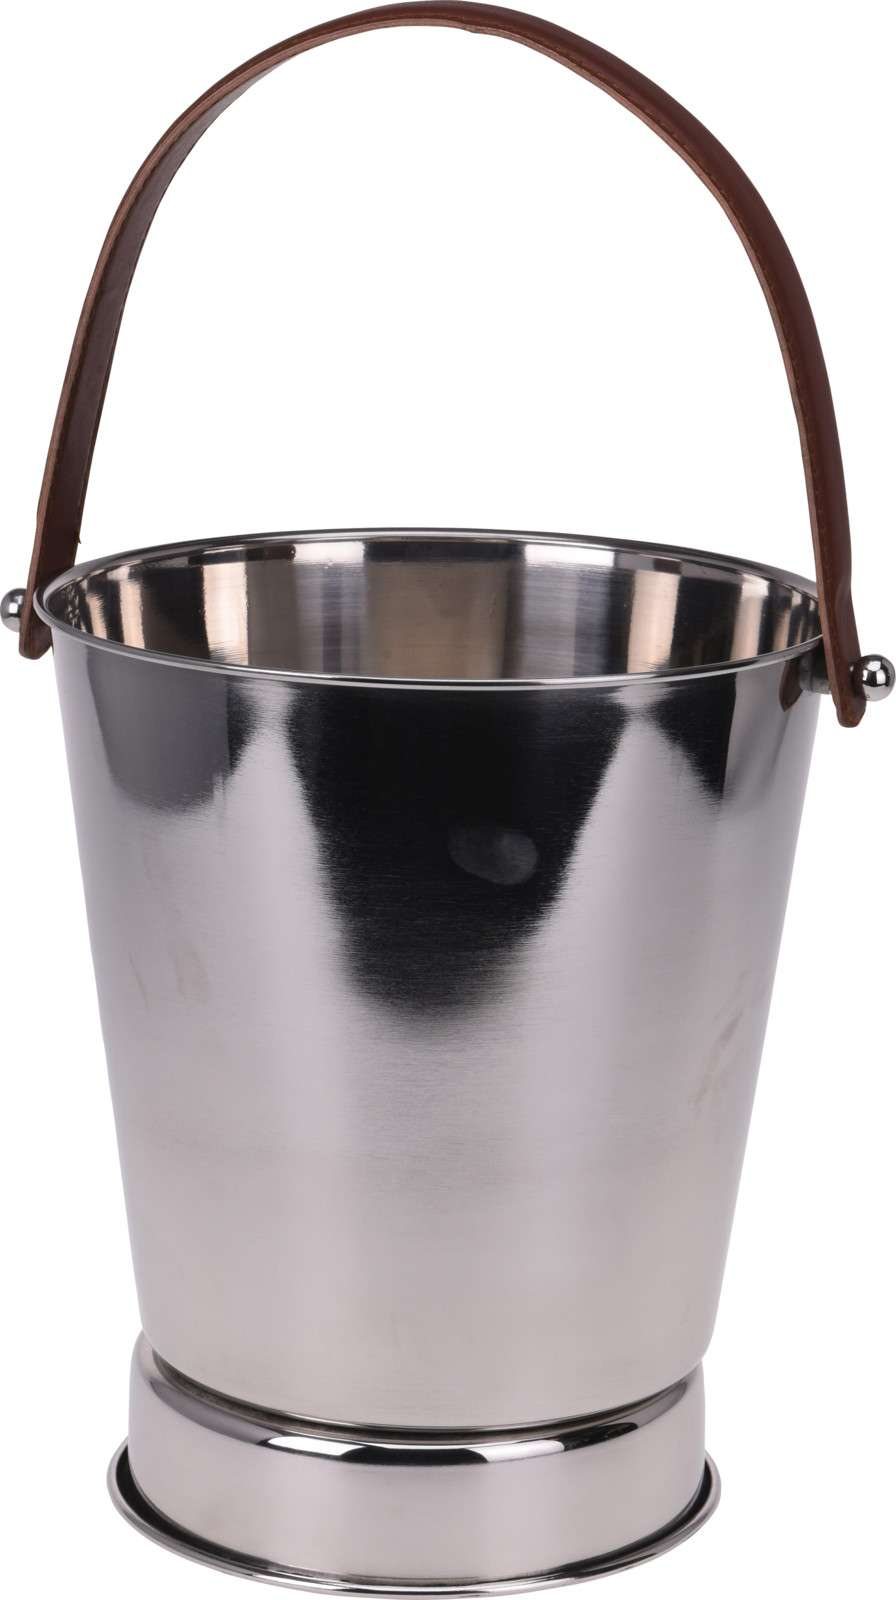 CHAMPAGNE/WINE COOLER W/ LEATHER HANDLES Thumbnail